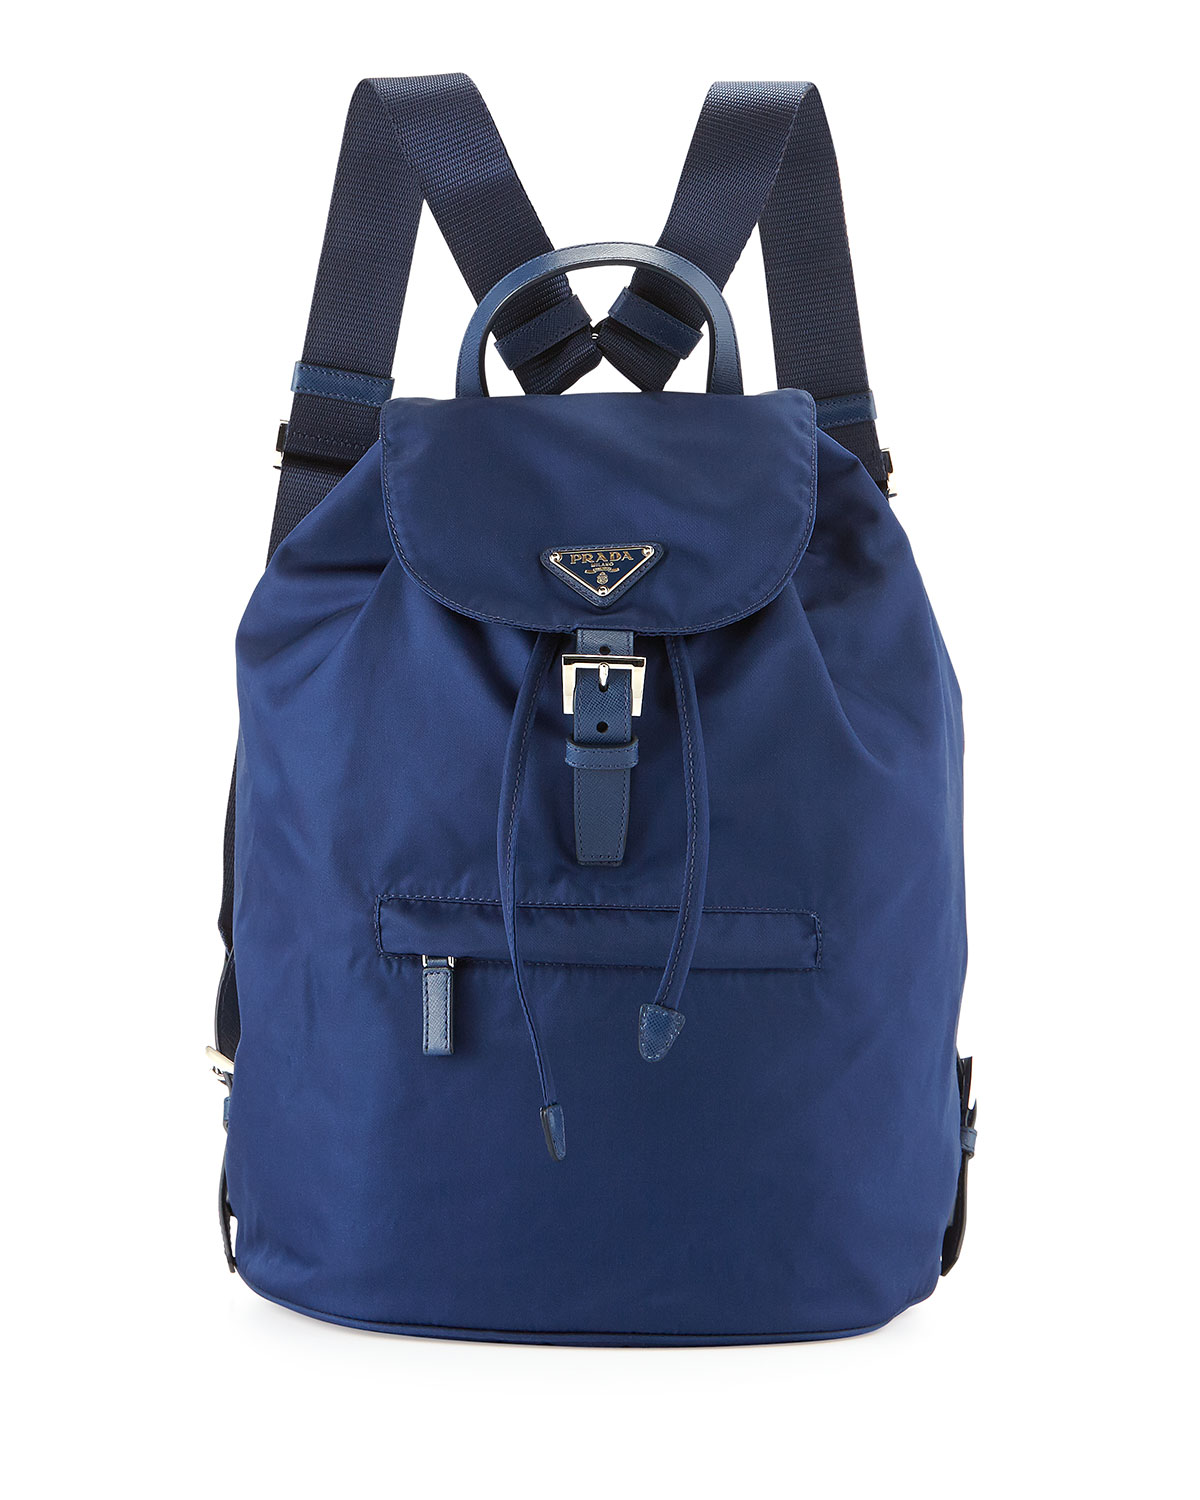 3a02ca3f6b32a5 Prada Vela Medium Backpack, Blue (Royal) | Neiman Marcus